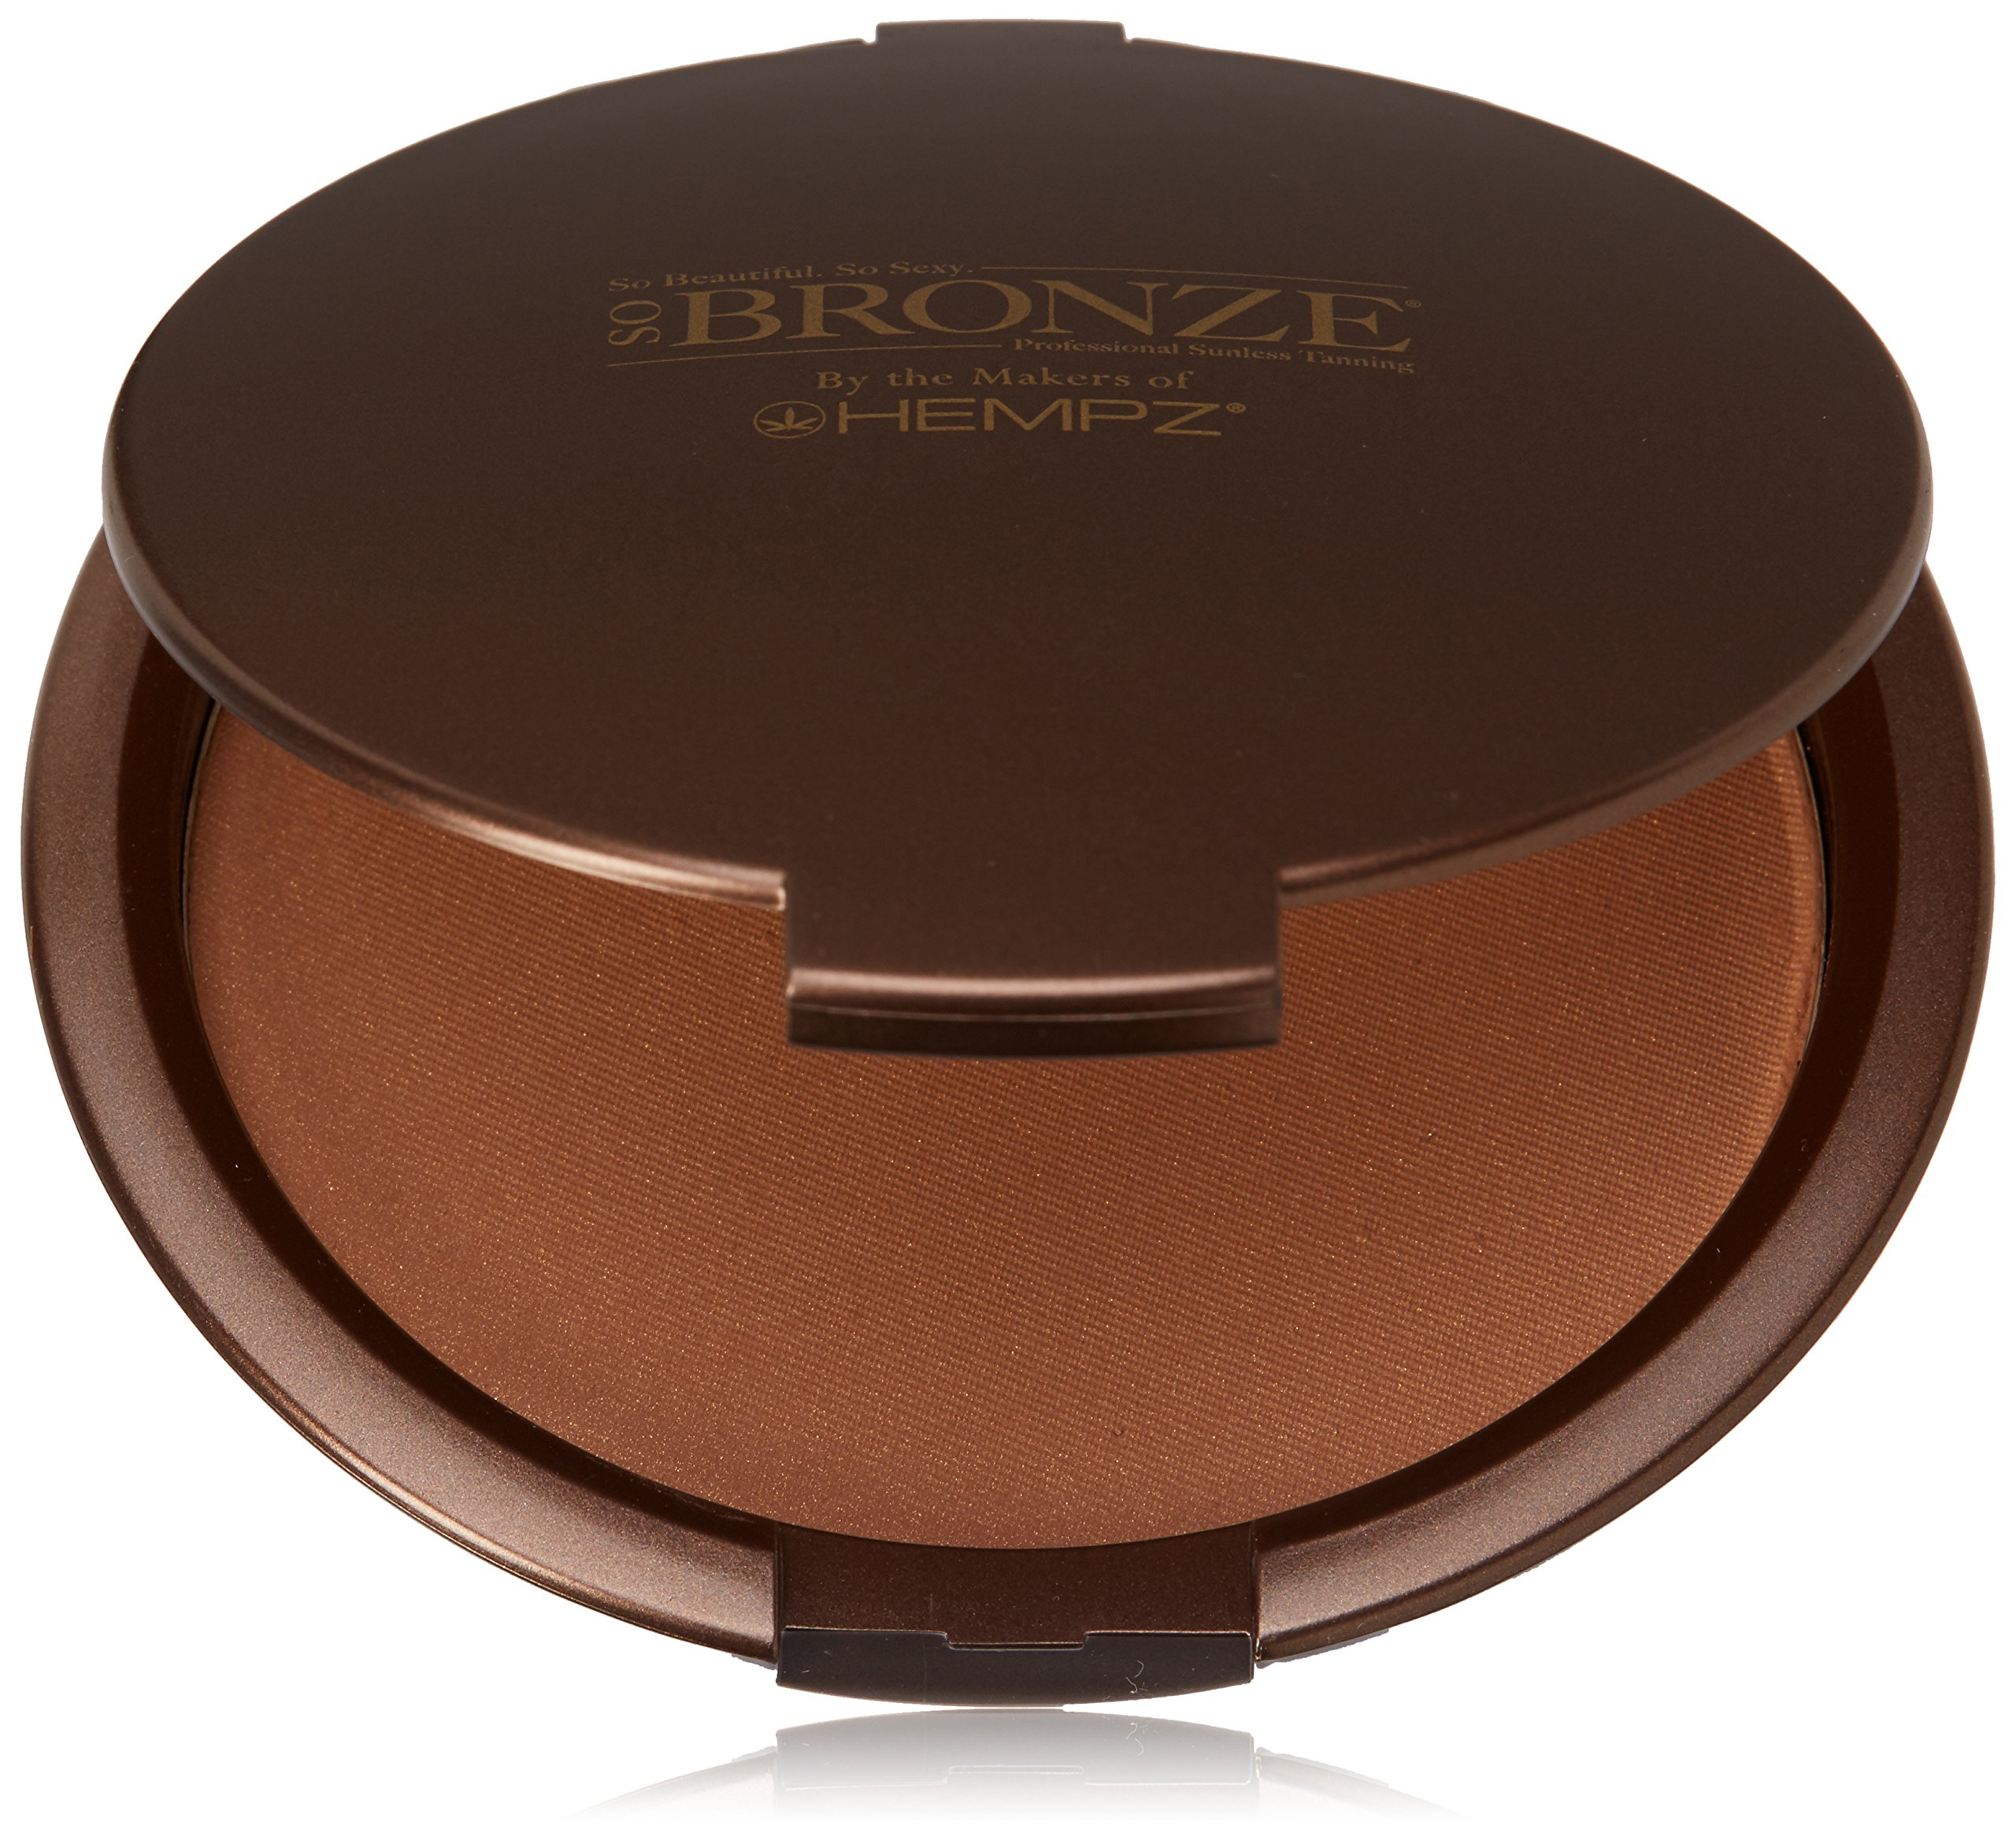 Hempz So Bronze Compact Body Bronzer, Shimmer Bronze, 0.70 Ounce